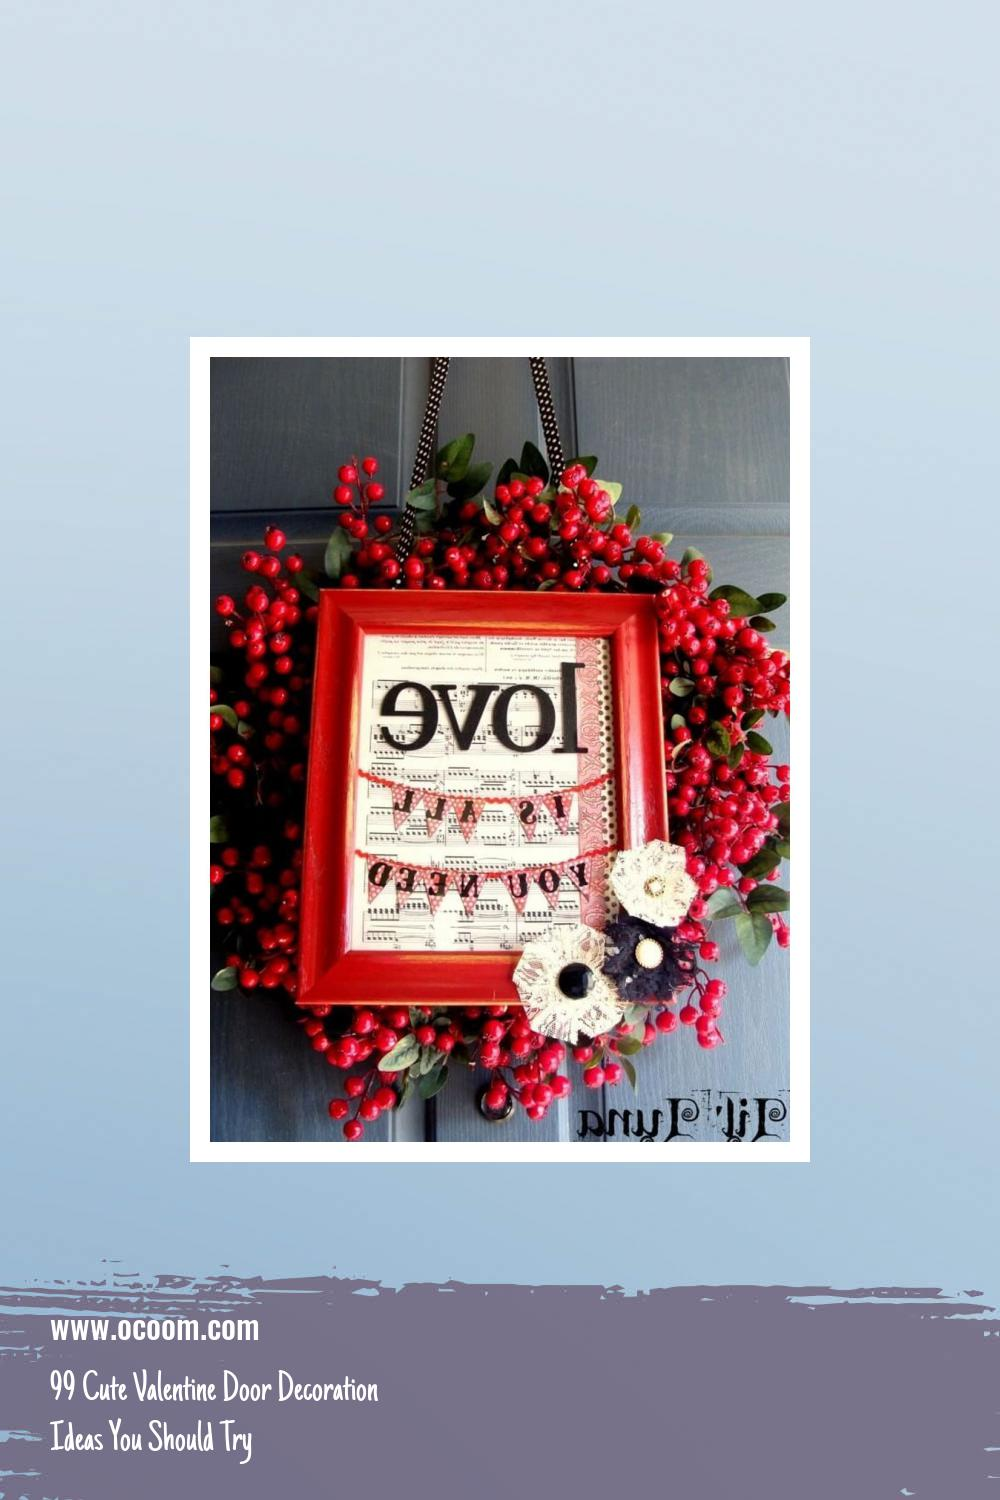 99 Cute Valentine Door Decoration Ideas You Should Try 12